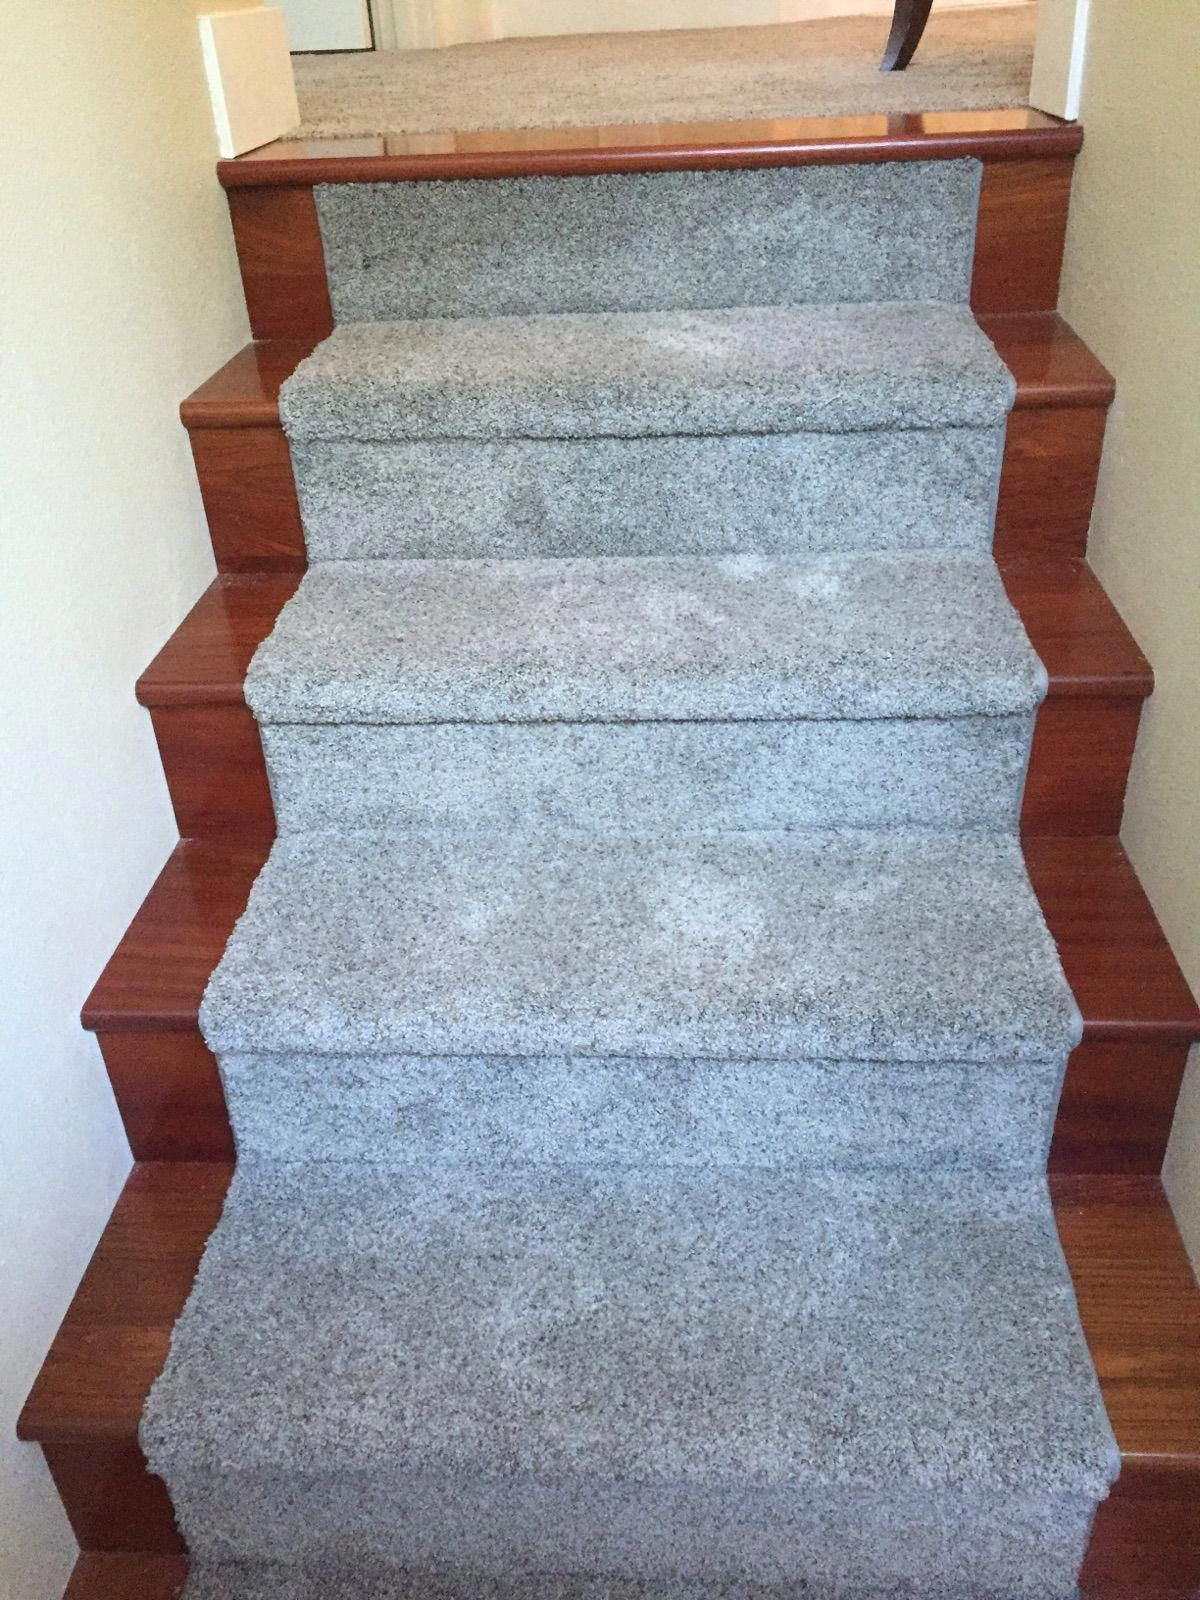 Carpet Runners For Stairs Lowes Carpetrunners2ftwide Wheretobuycarpetrunnersforstairs In 2020 Cheap Carpet Runners Red Carpet Runner Where To Buy Carpet